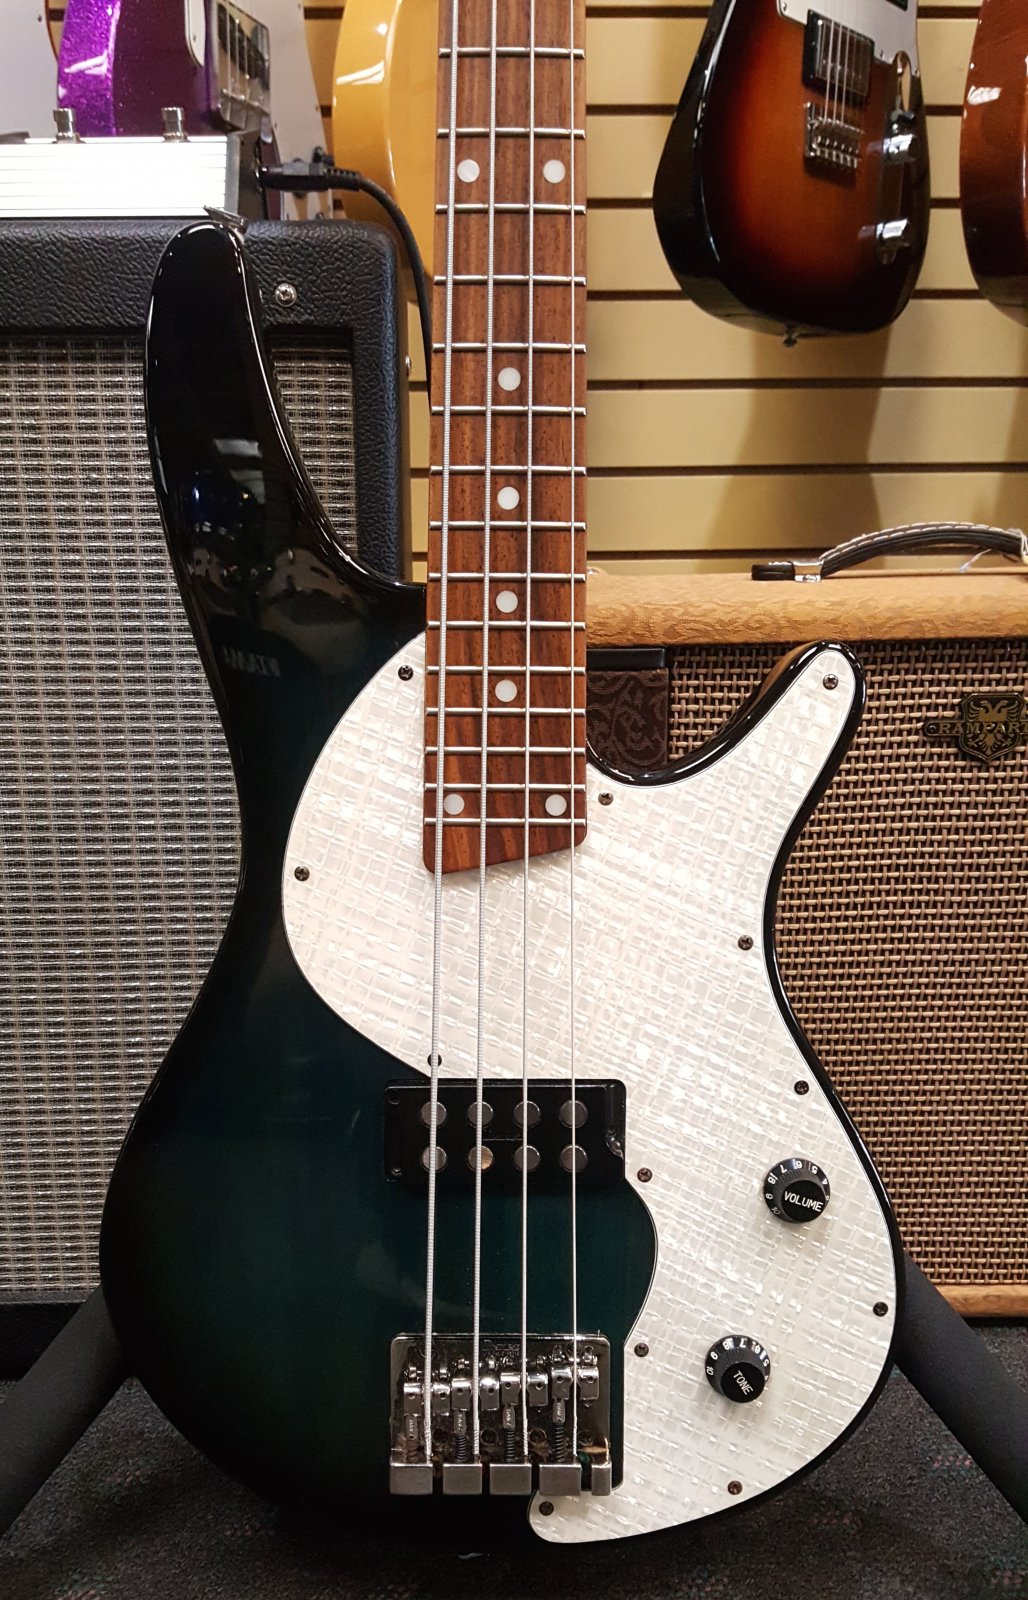 Used Ibanez SRX400 Electric Bass Guitar - Transparent Green